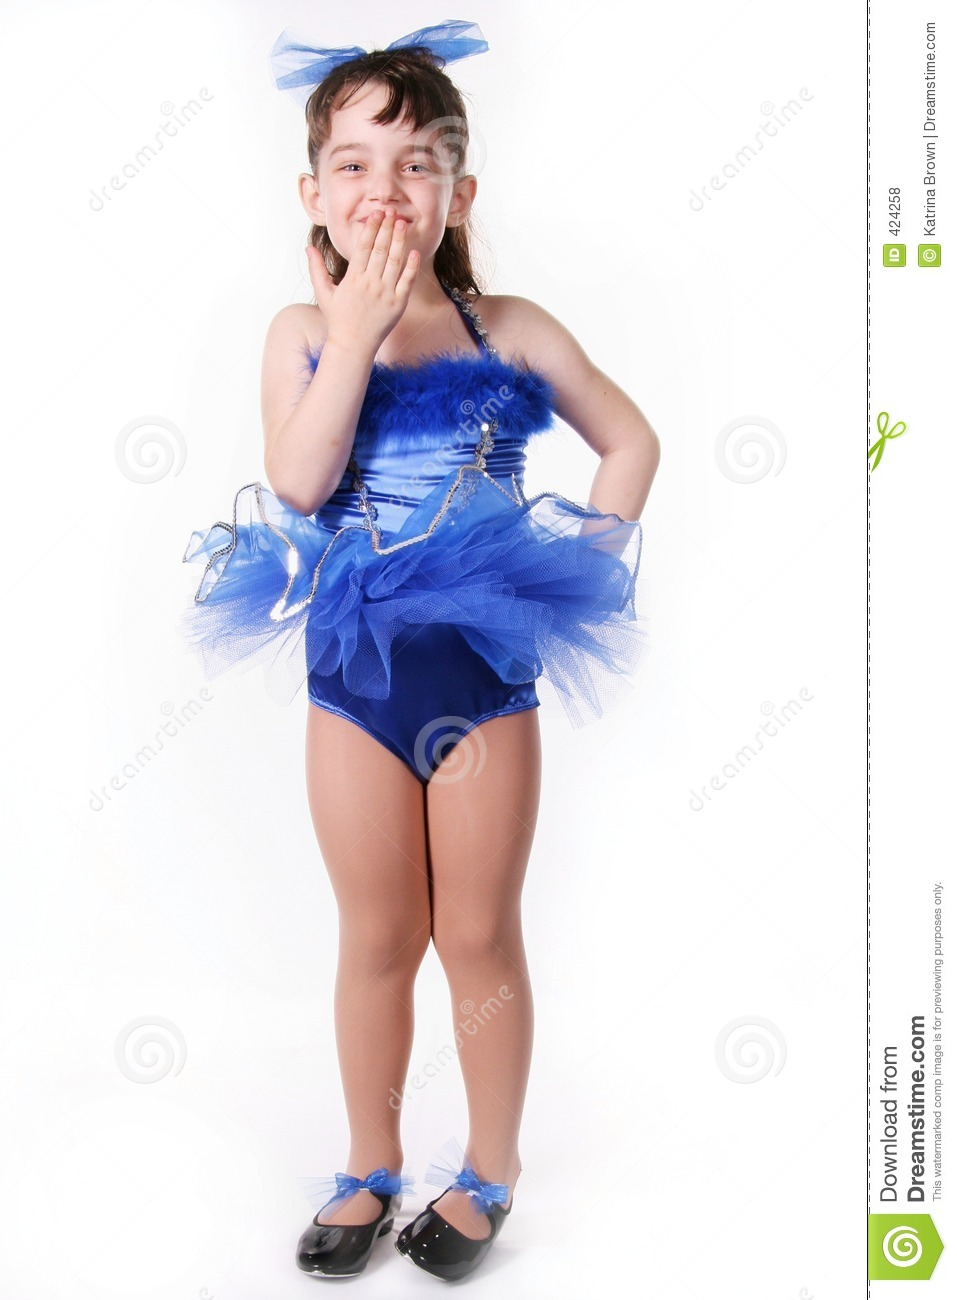 Tiny girl dancer royalty free stock photos image 424258 - Pics of small little girls ...